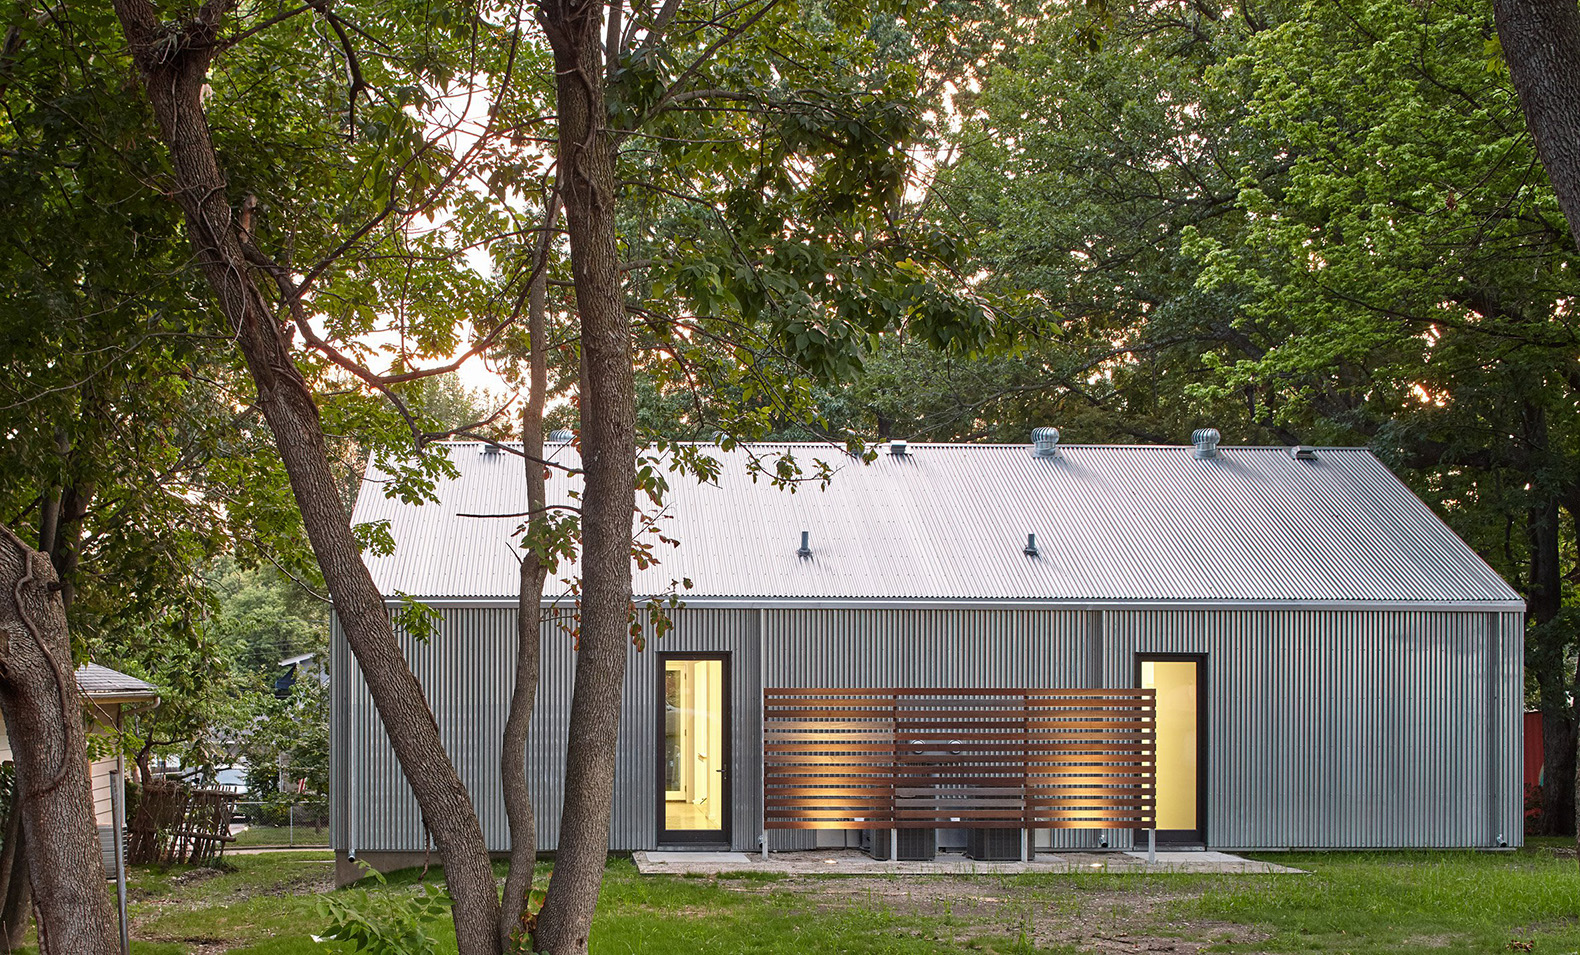 cool building an affordable home. Affordable housing  duplex in Kansas City Design Make Studio El Dorado Inc State students built this charming affordable home for low